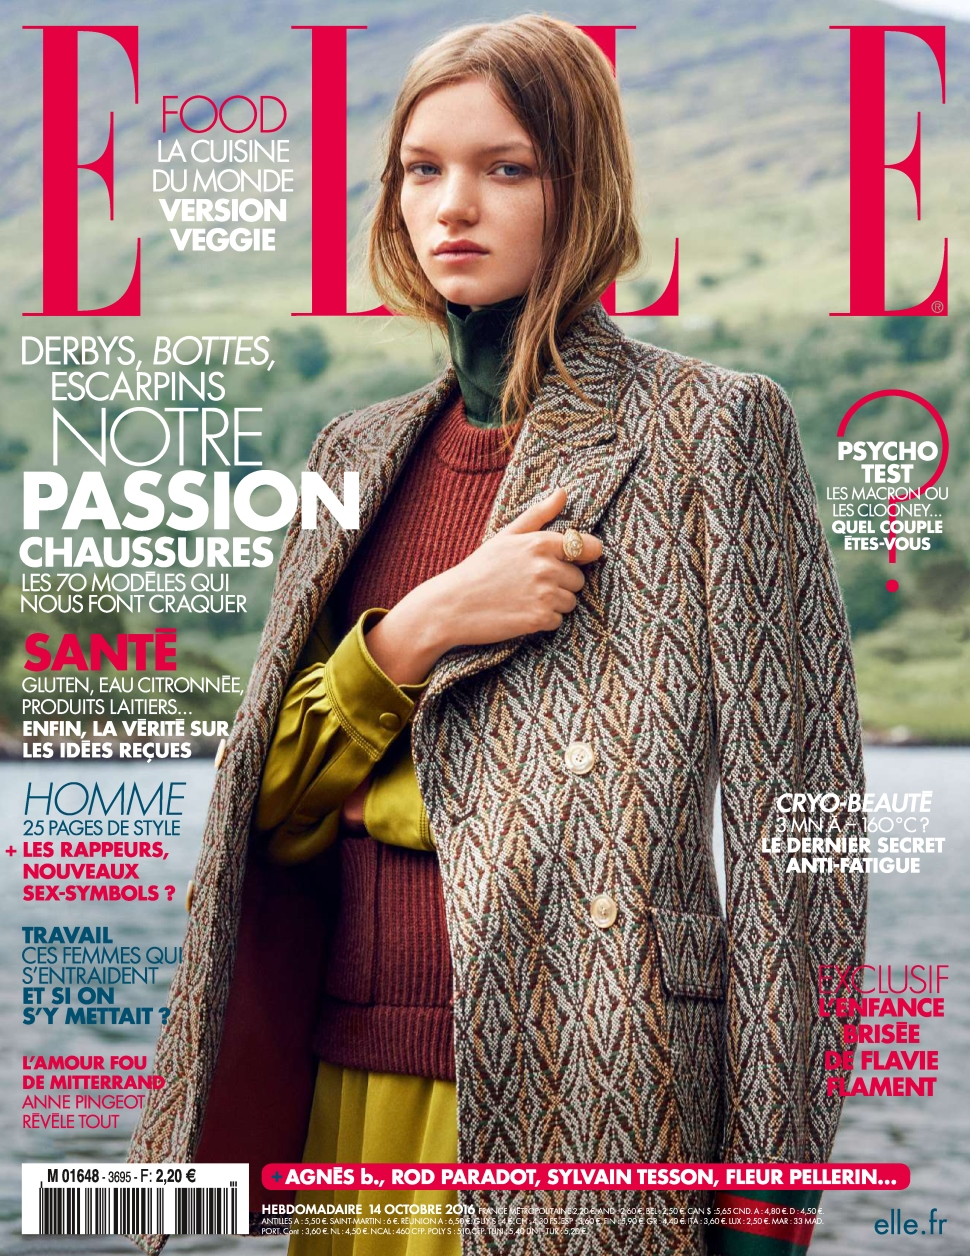 Elle France 3695 - 14 au 20 Octobre 2016